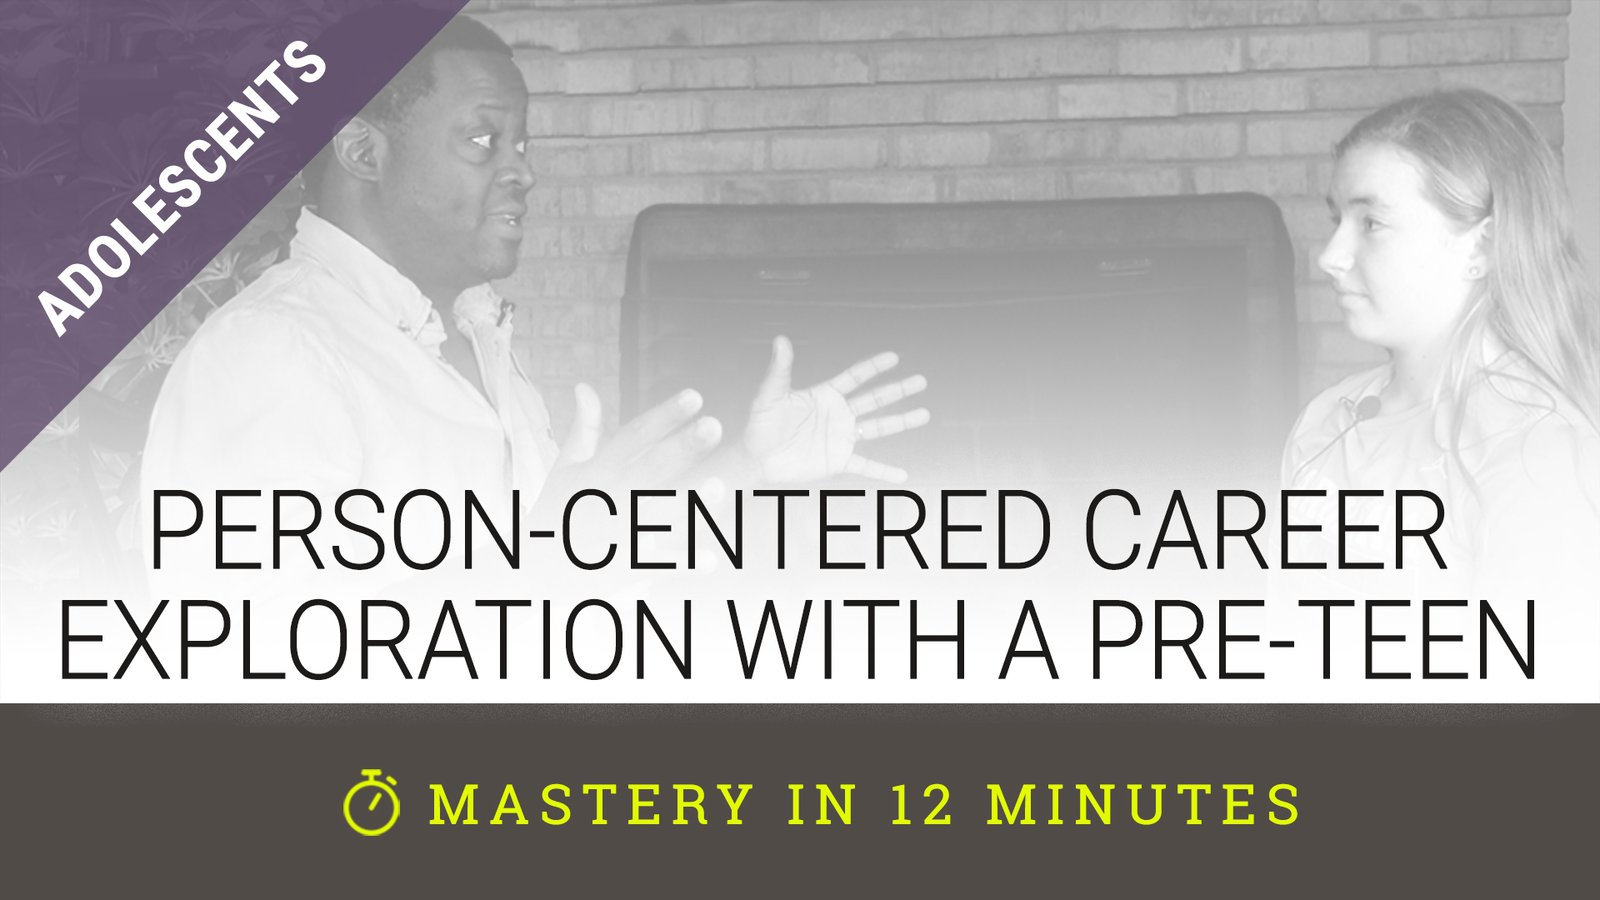 Person-Centered Career Exploration with a Pre-Teen